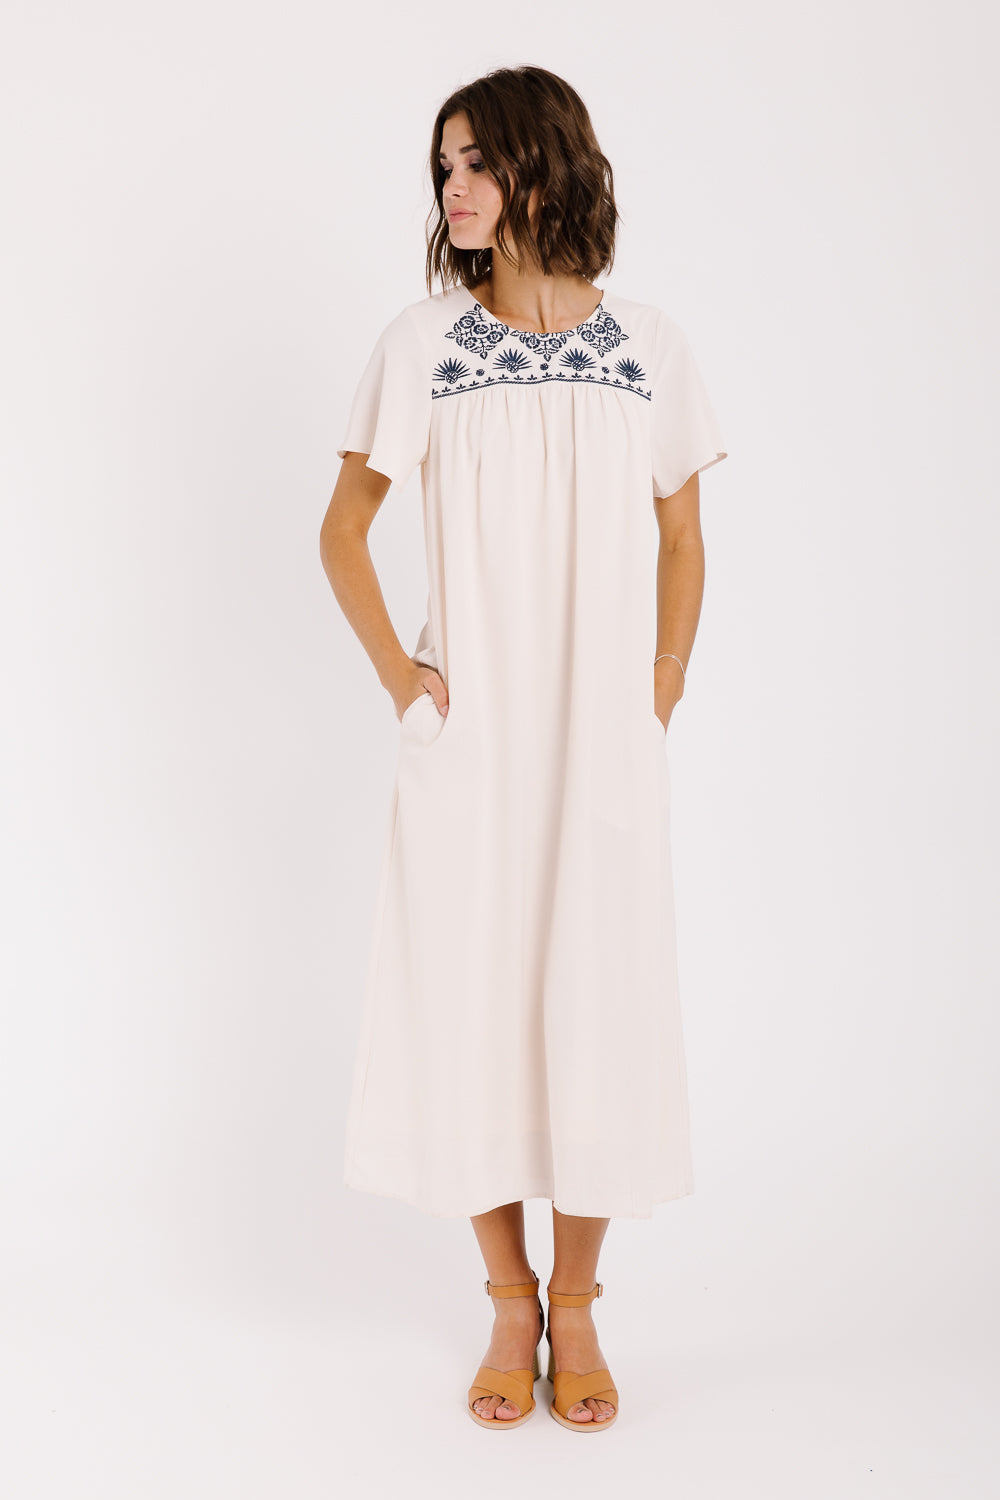 Piper & Scoot: The Hathaway Embroidered Maxi Dress in Natural